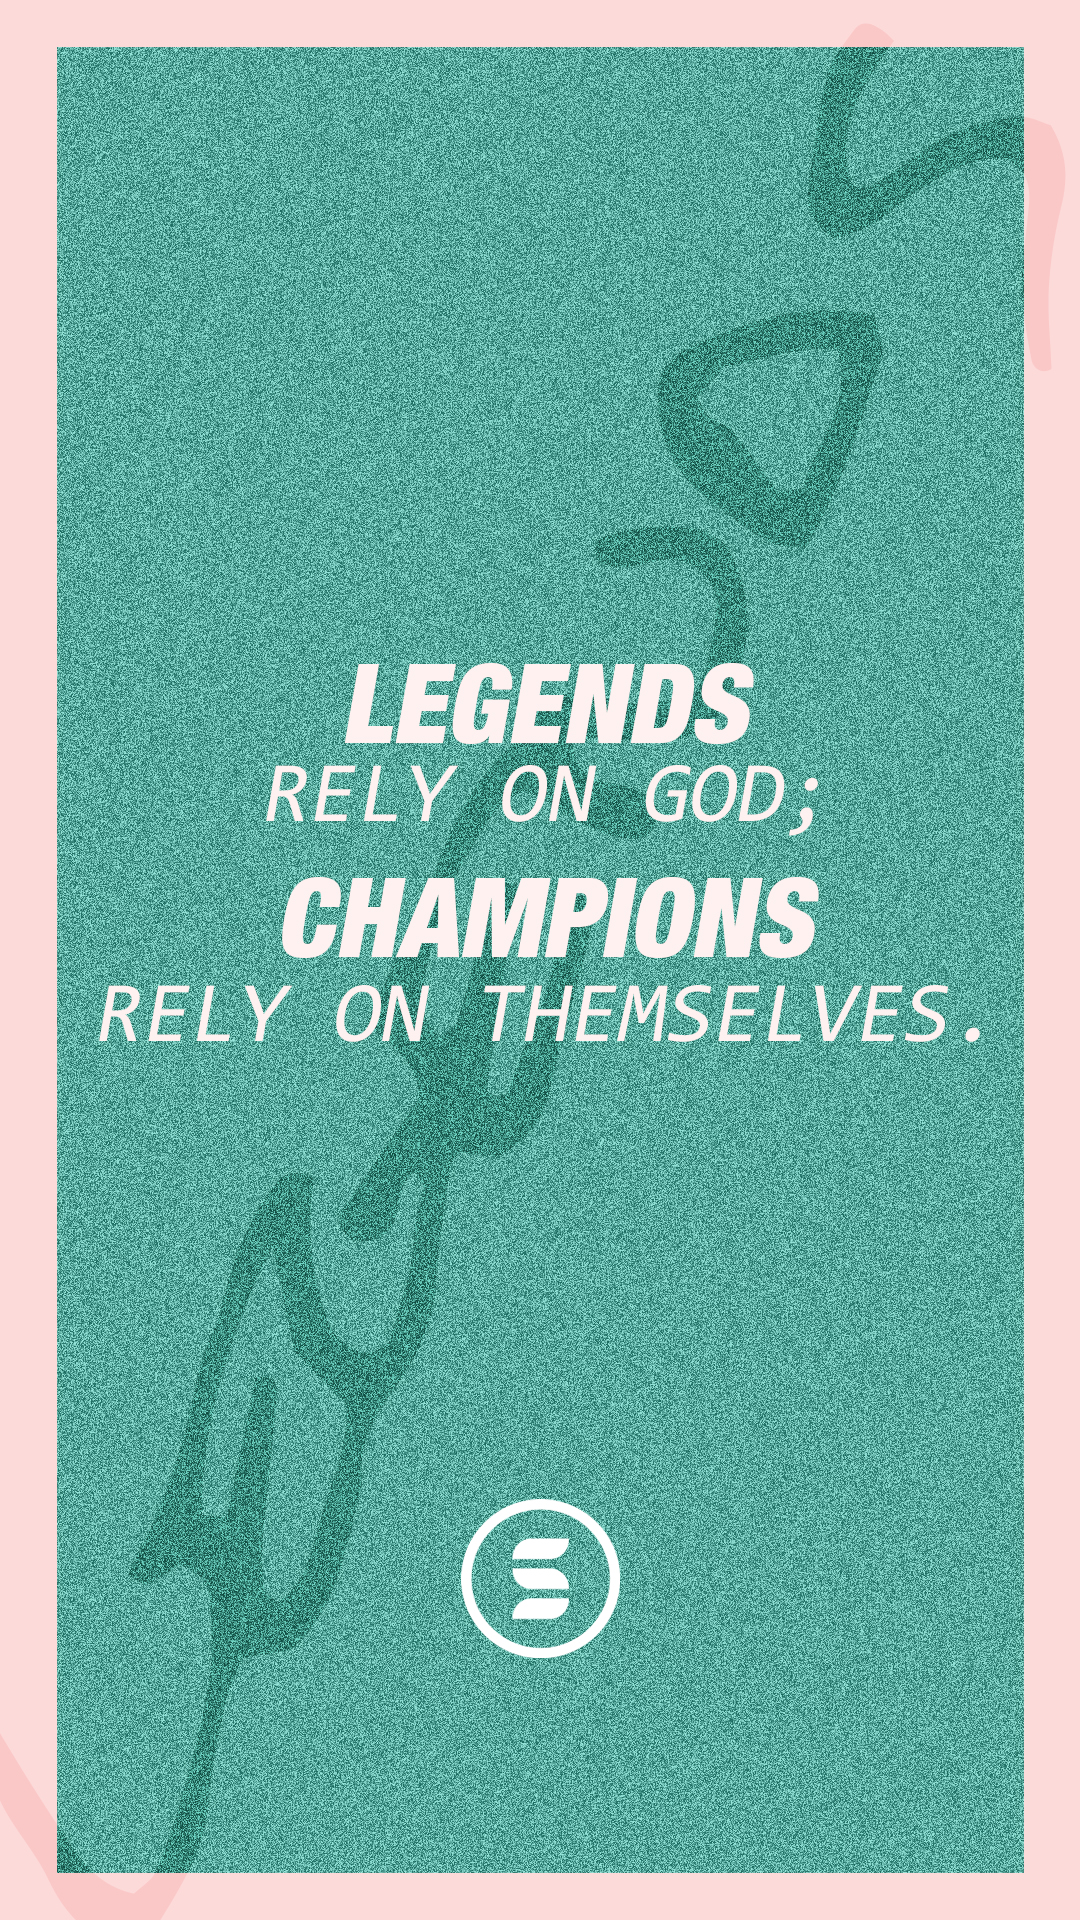 Instagram Story Quote 2 (PSD)